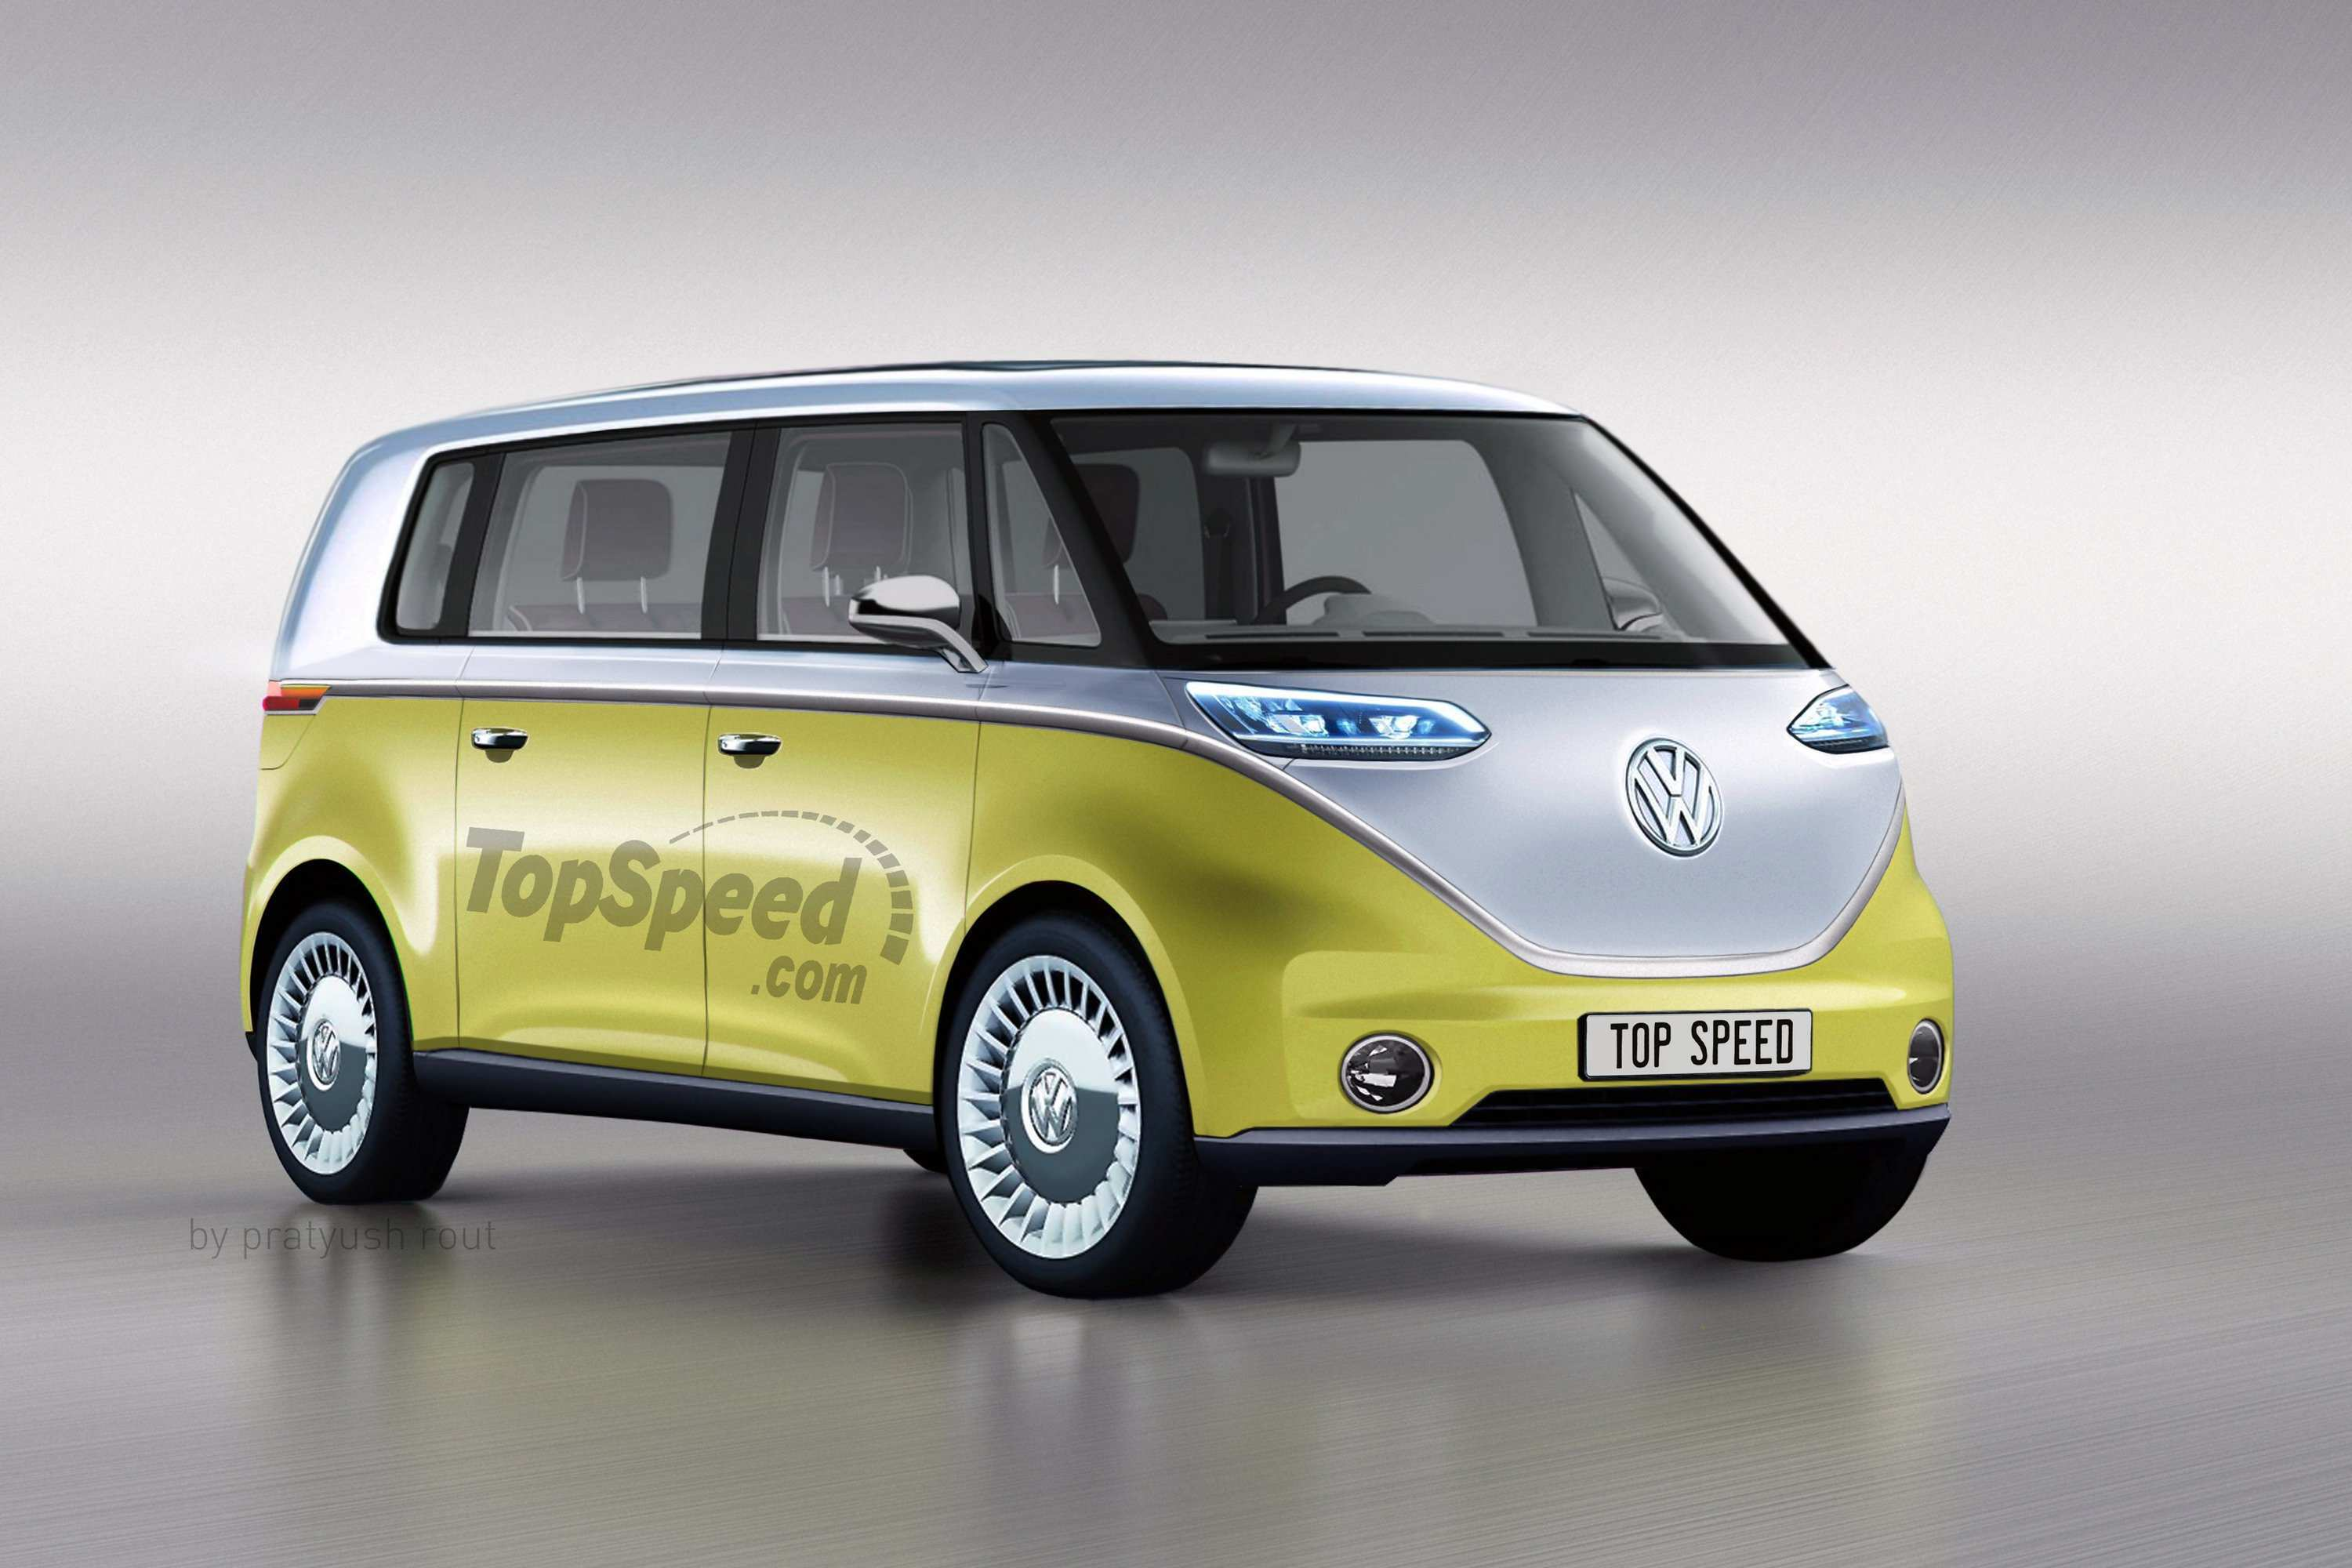 72 Concept of 2020 Vw Minibus Specs and Review for 2020 Vw Minibus